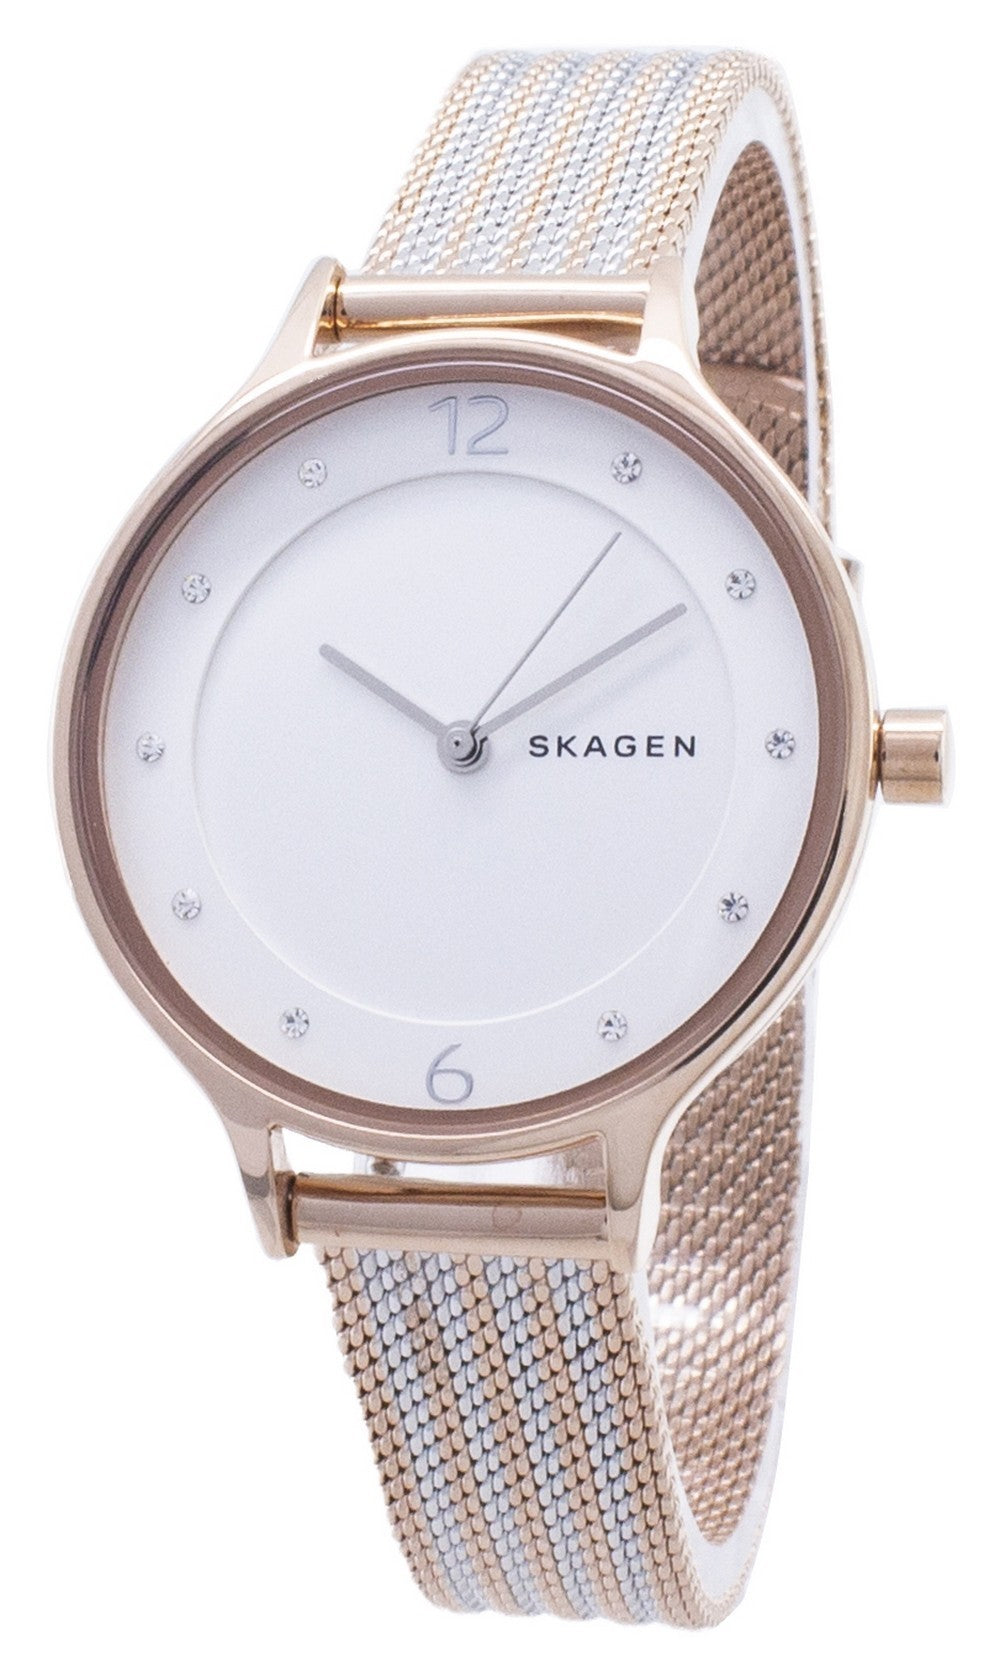 Skagen Anita SKW2749 Quartz Analog Women's Watch